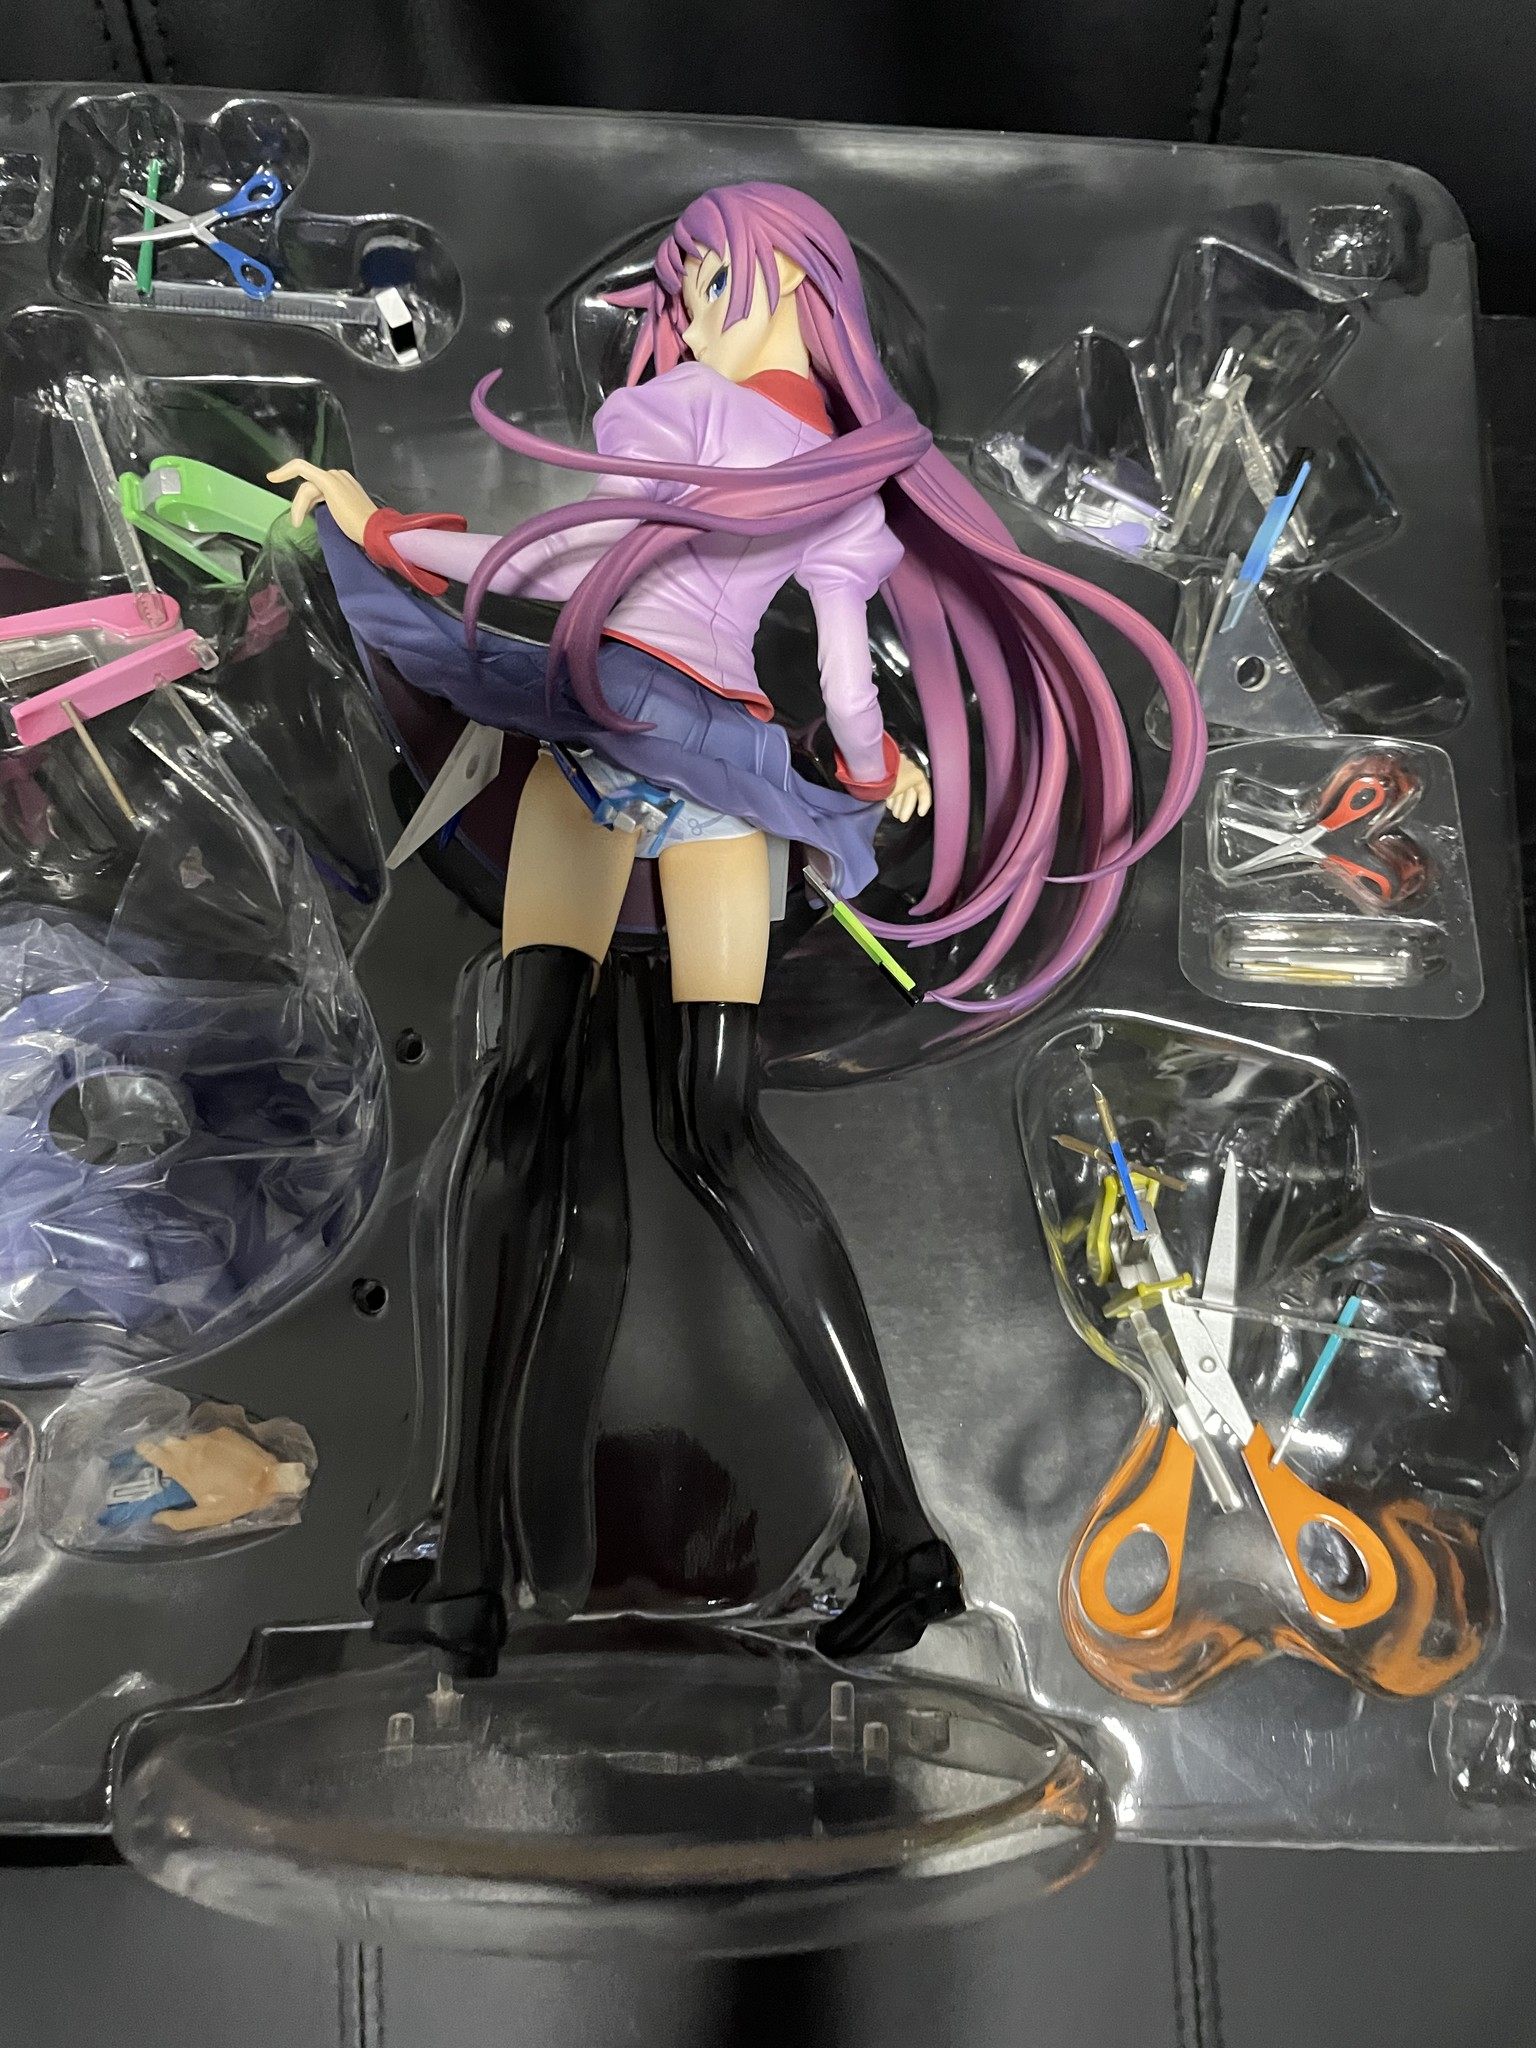 https://static.myfigurecollection.net/upload/pictures/2021/05/10/2712046.jpeg